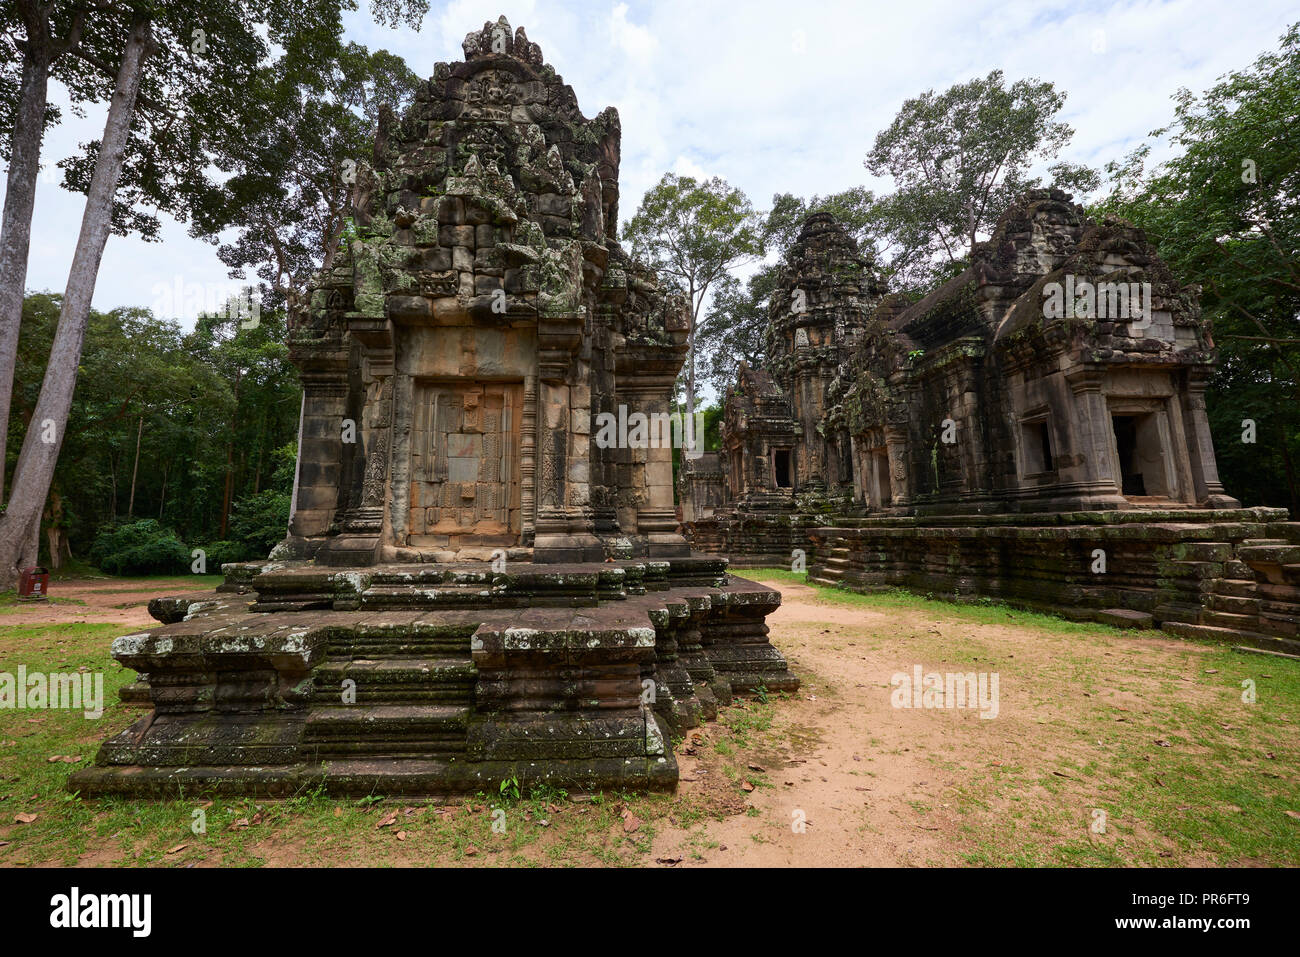 Chau Say Tevoda ruins in Angkor Wat. The Angkor Wat complex, Built during the Khmer Empire age, located in Siem Reap, Cambodia, is the largest religio - Stock Image